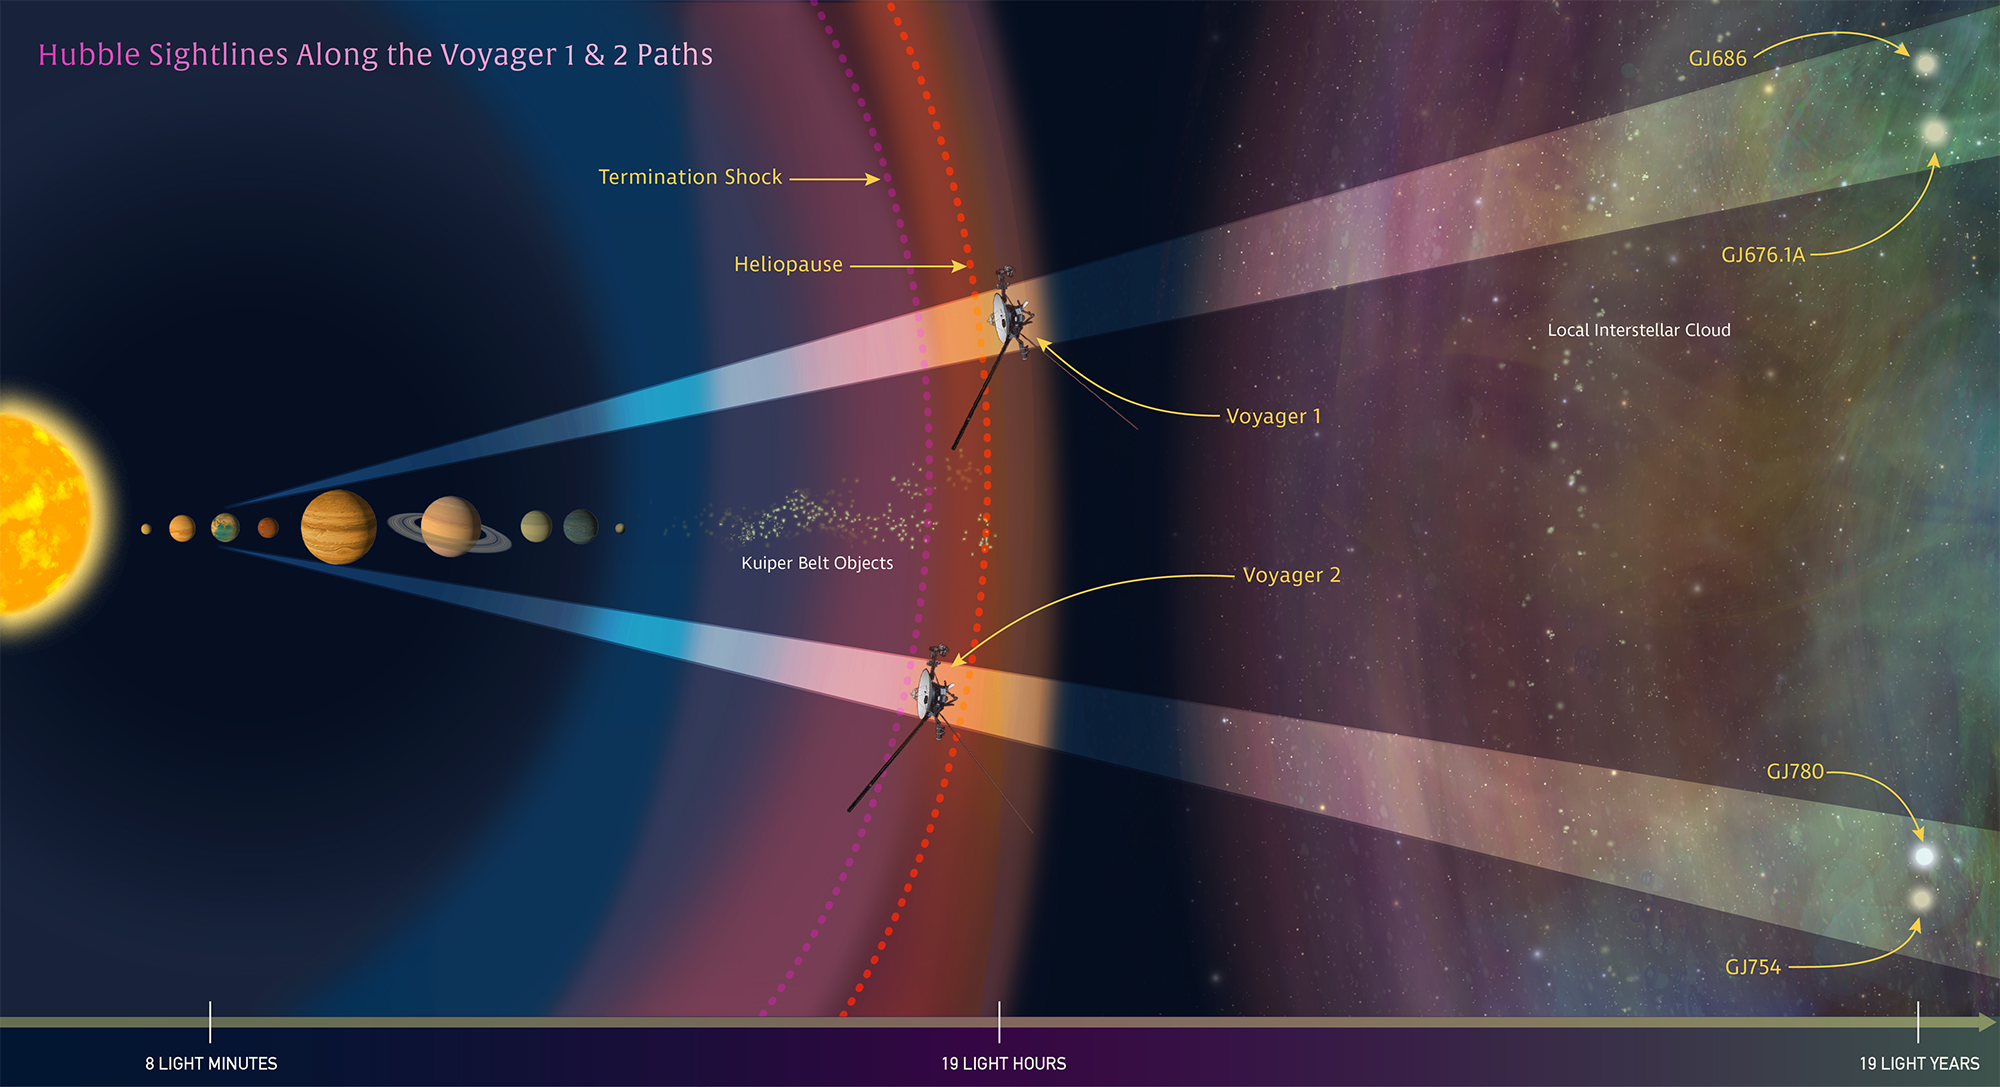 Hubble Provides Interstellar Road Map For Voyagers Galactic Trek NASA - Solar location map